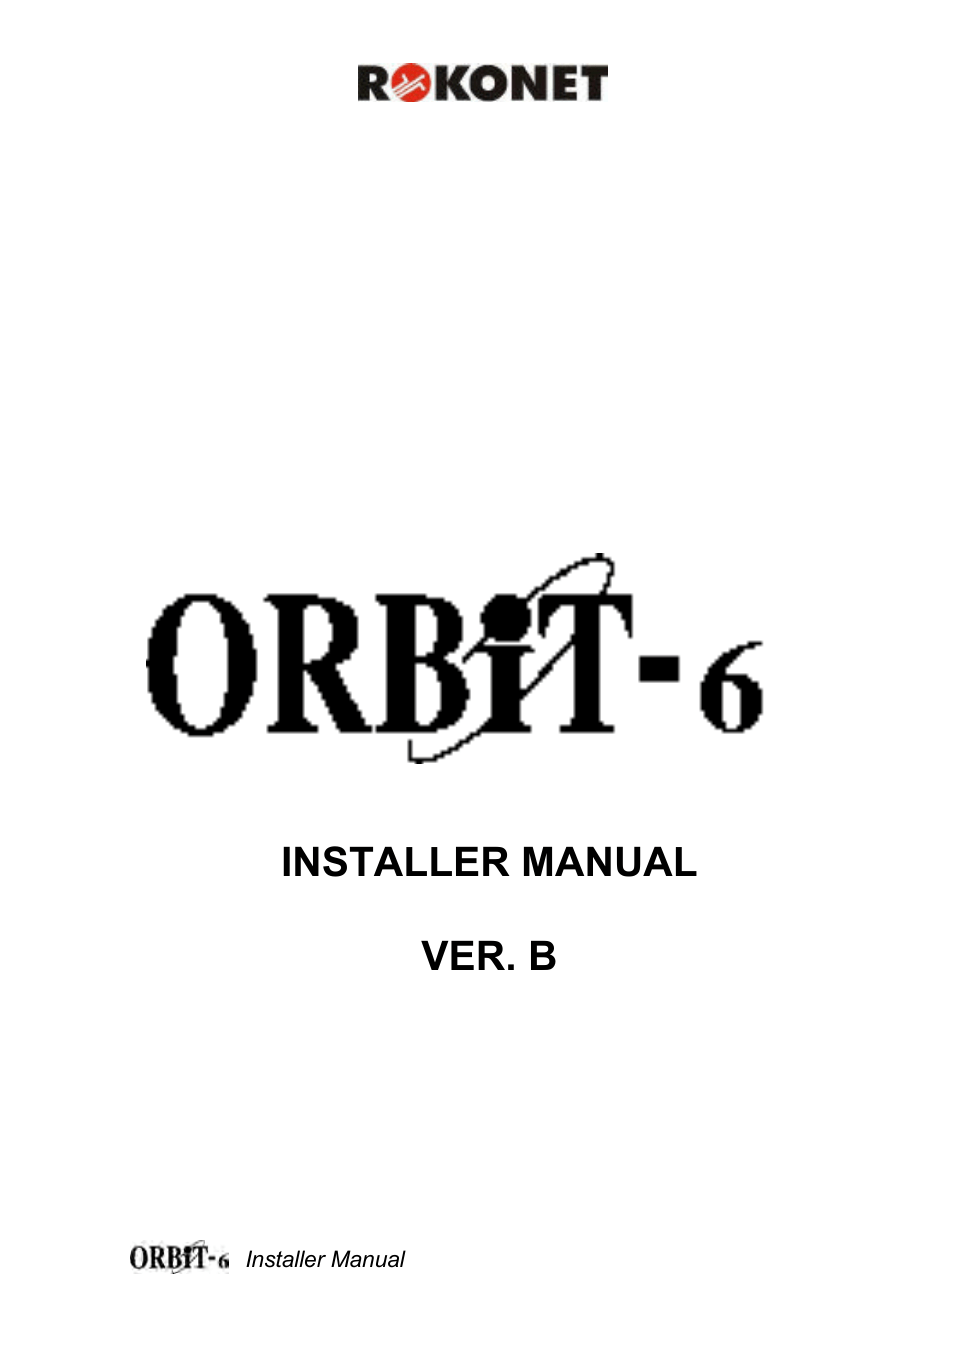 Orbit Manufacturing Rokonet ORBIT-6 RP-206 User Manual